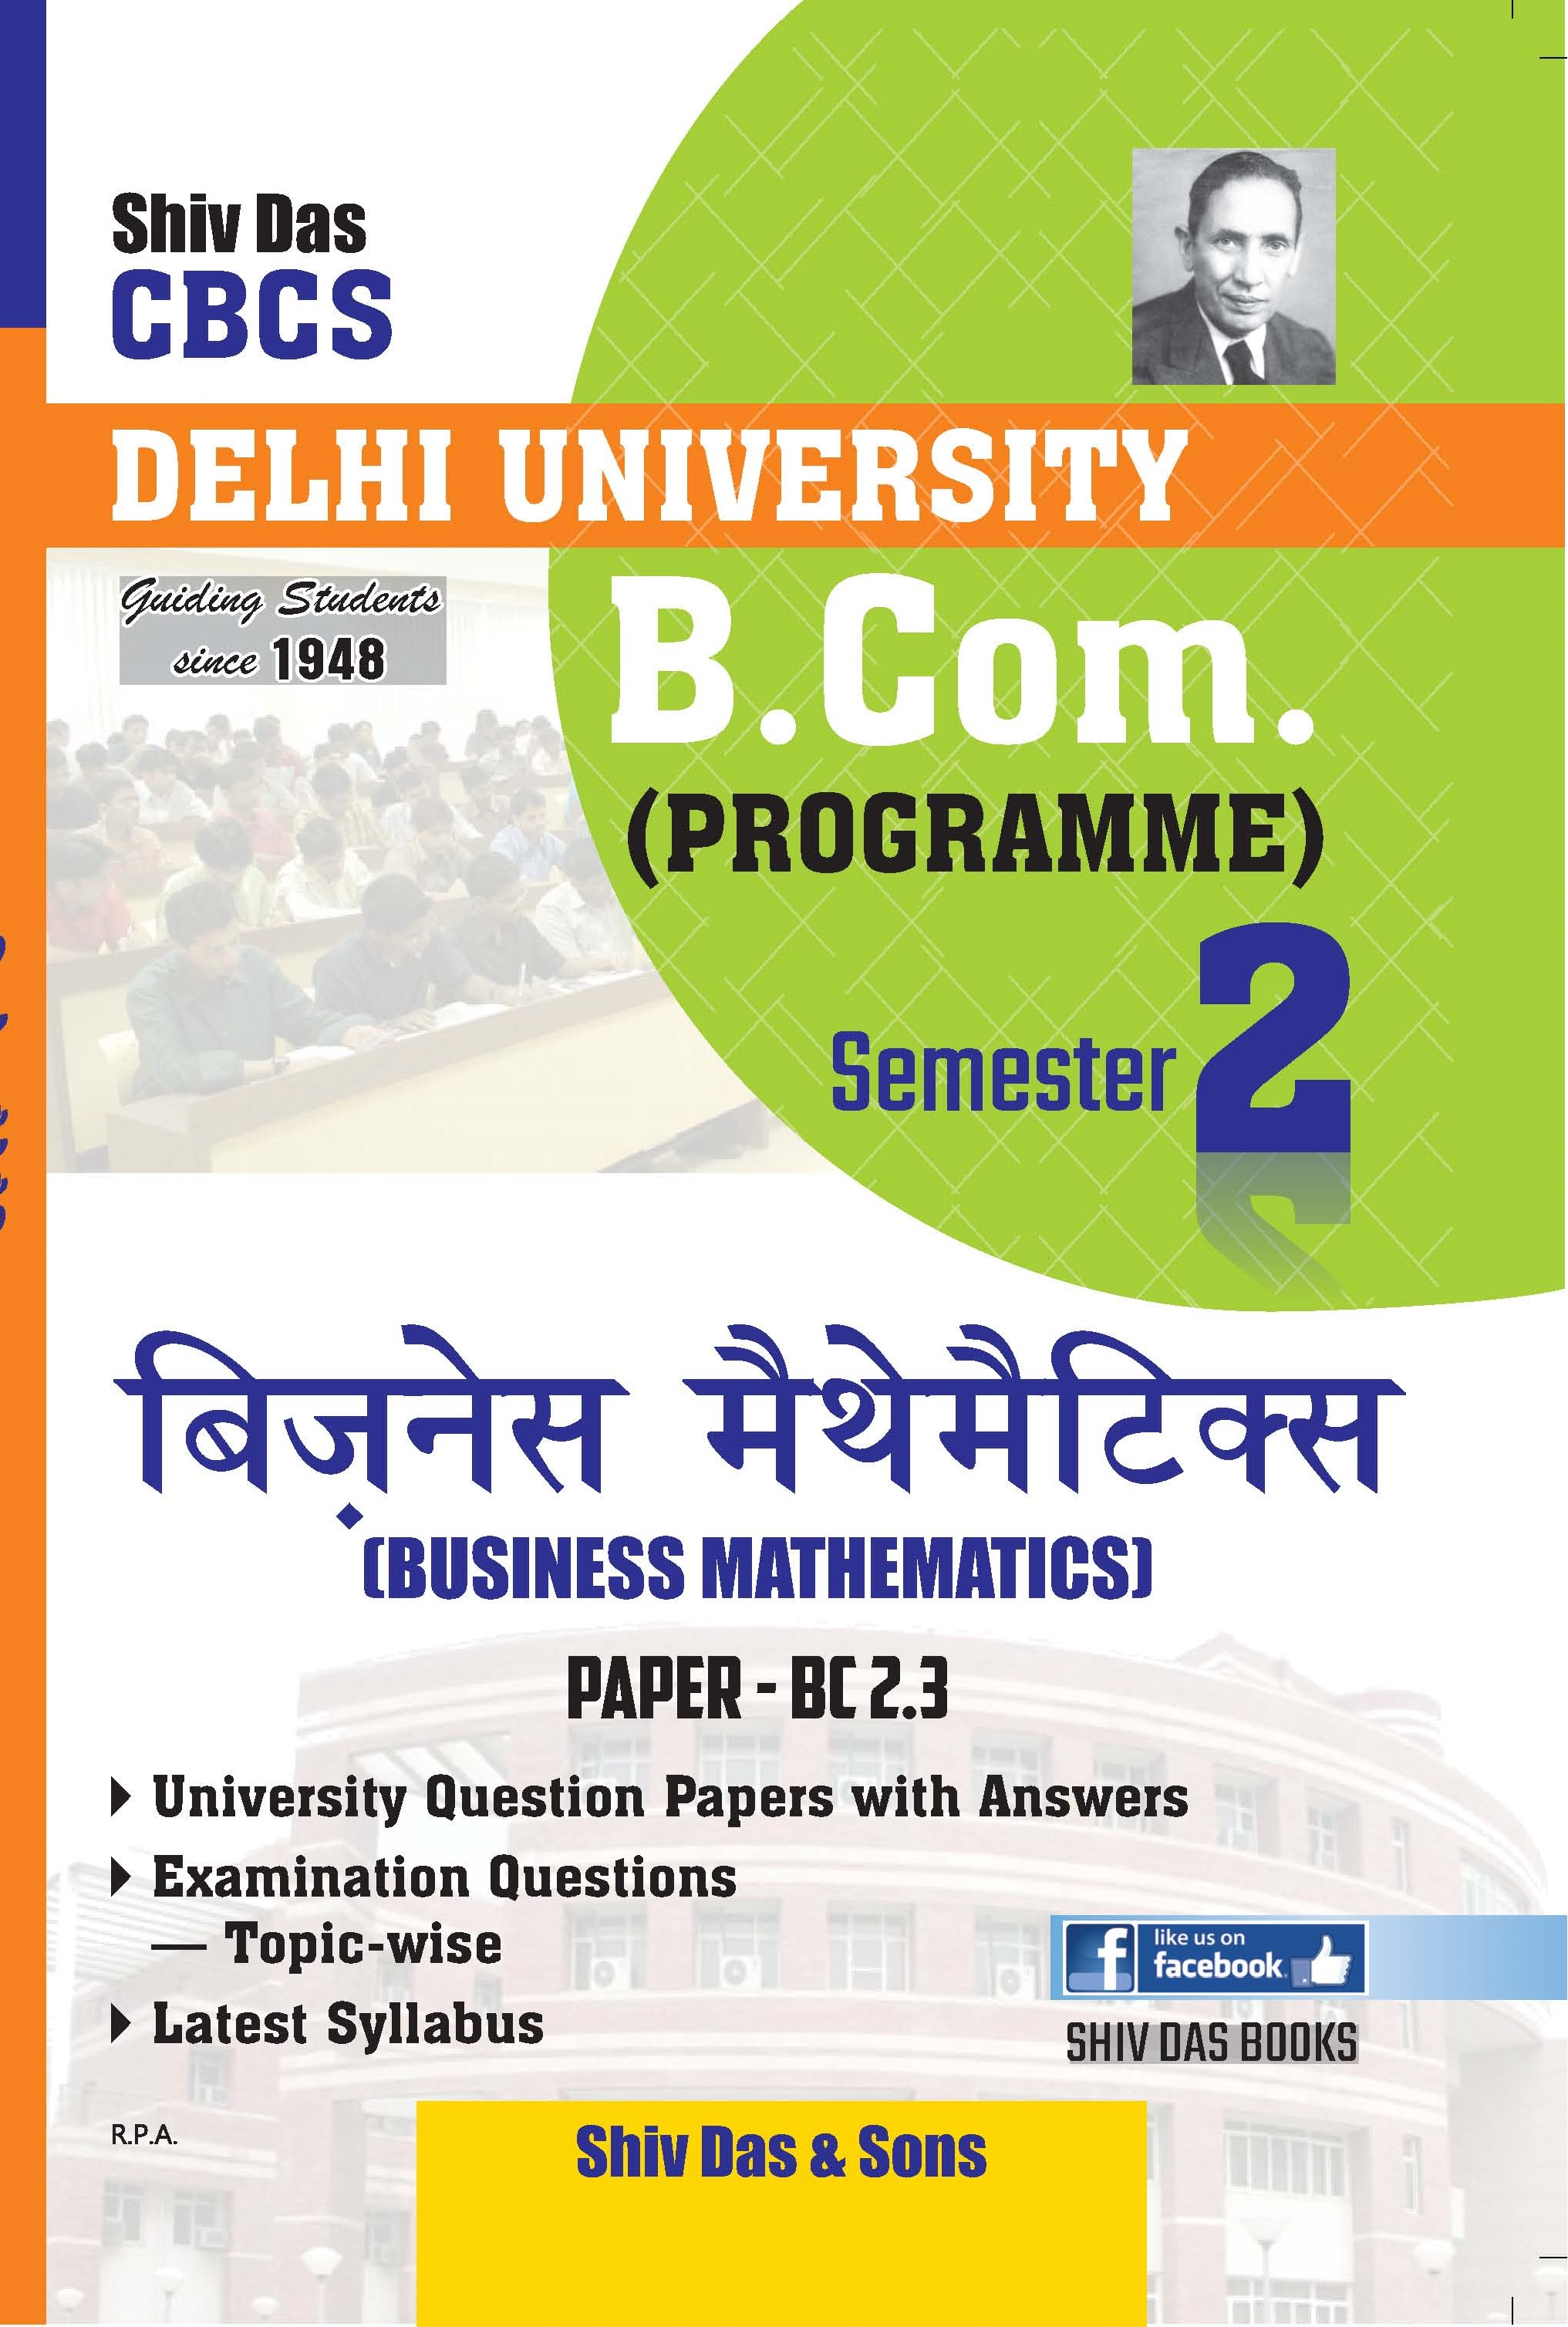 Business Mathematics (Hindi Med.) for B.Com Prog Semester-2 for Delhi University by Shiv Das